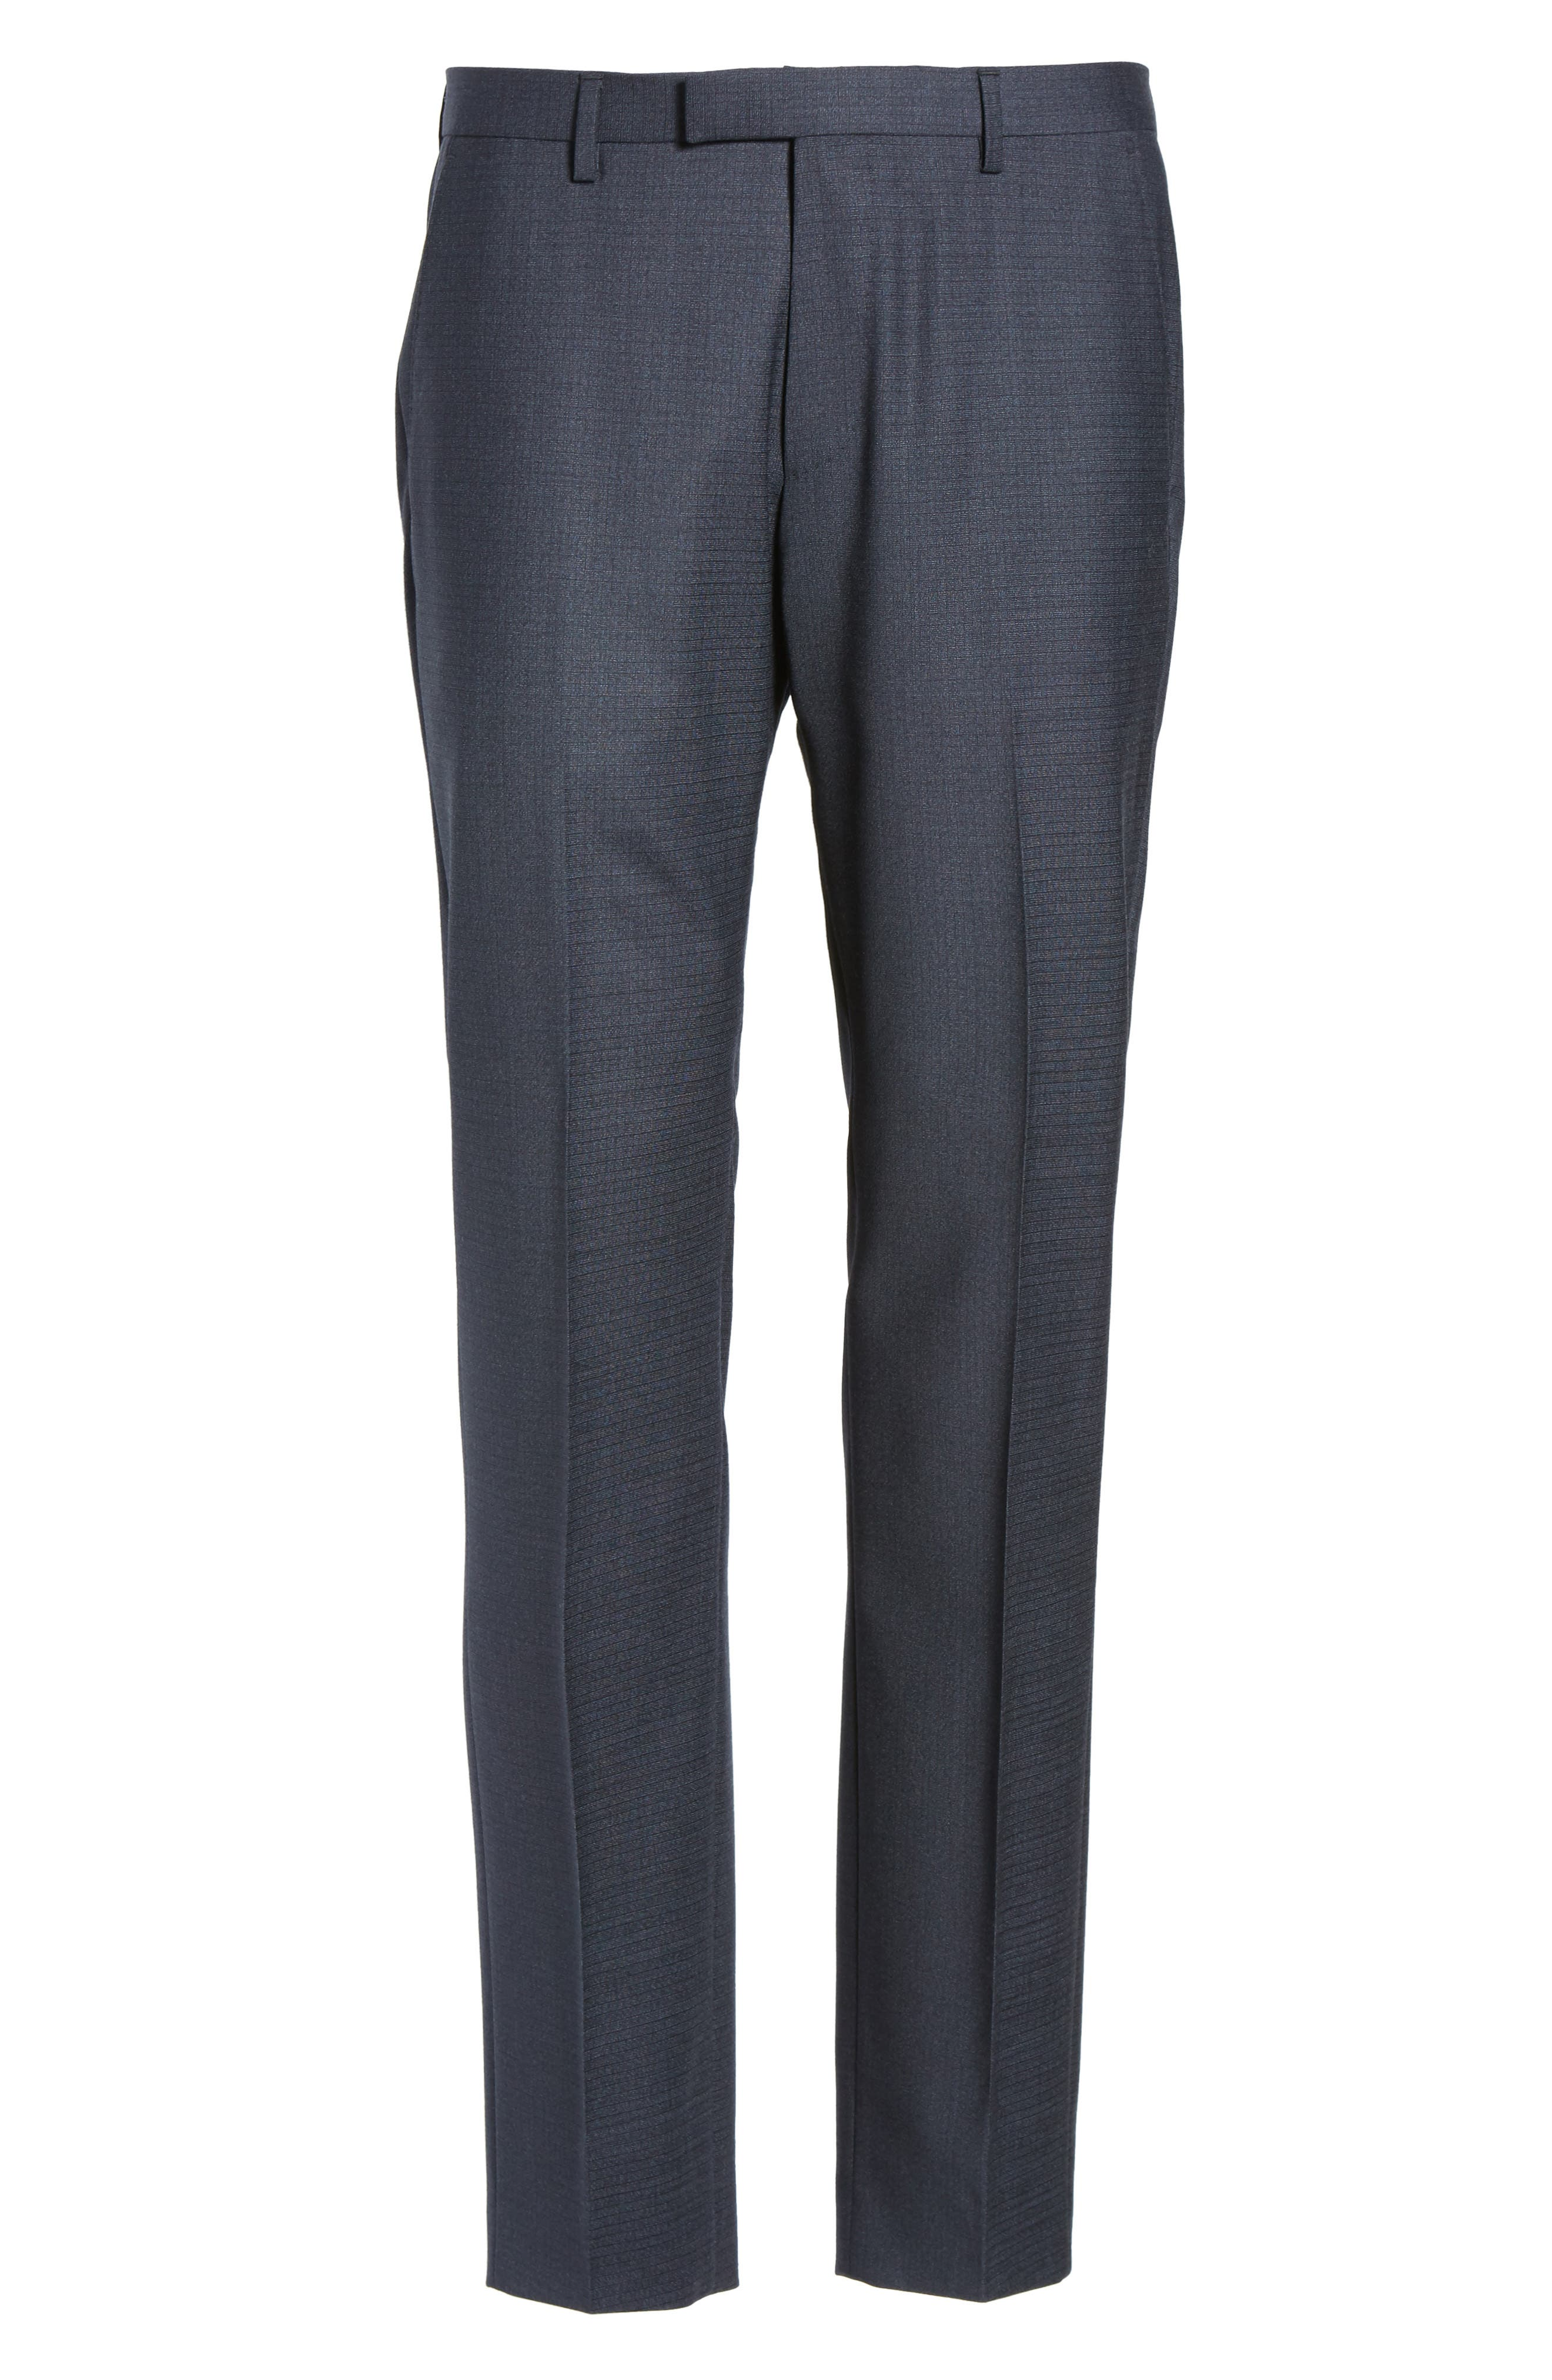 Leenon Classic Fit Plaid Stretch Wool Trousers,                             Alternate thumbnail 6, color,